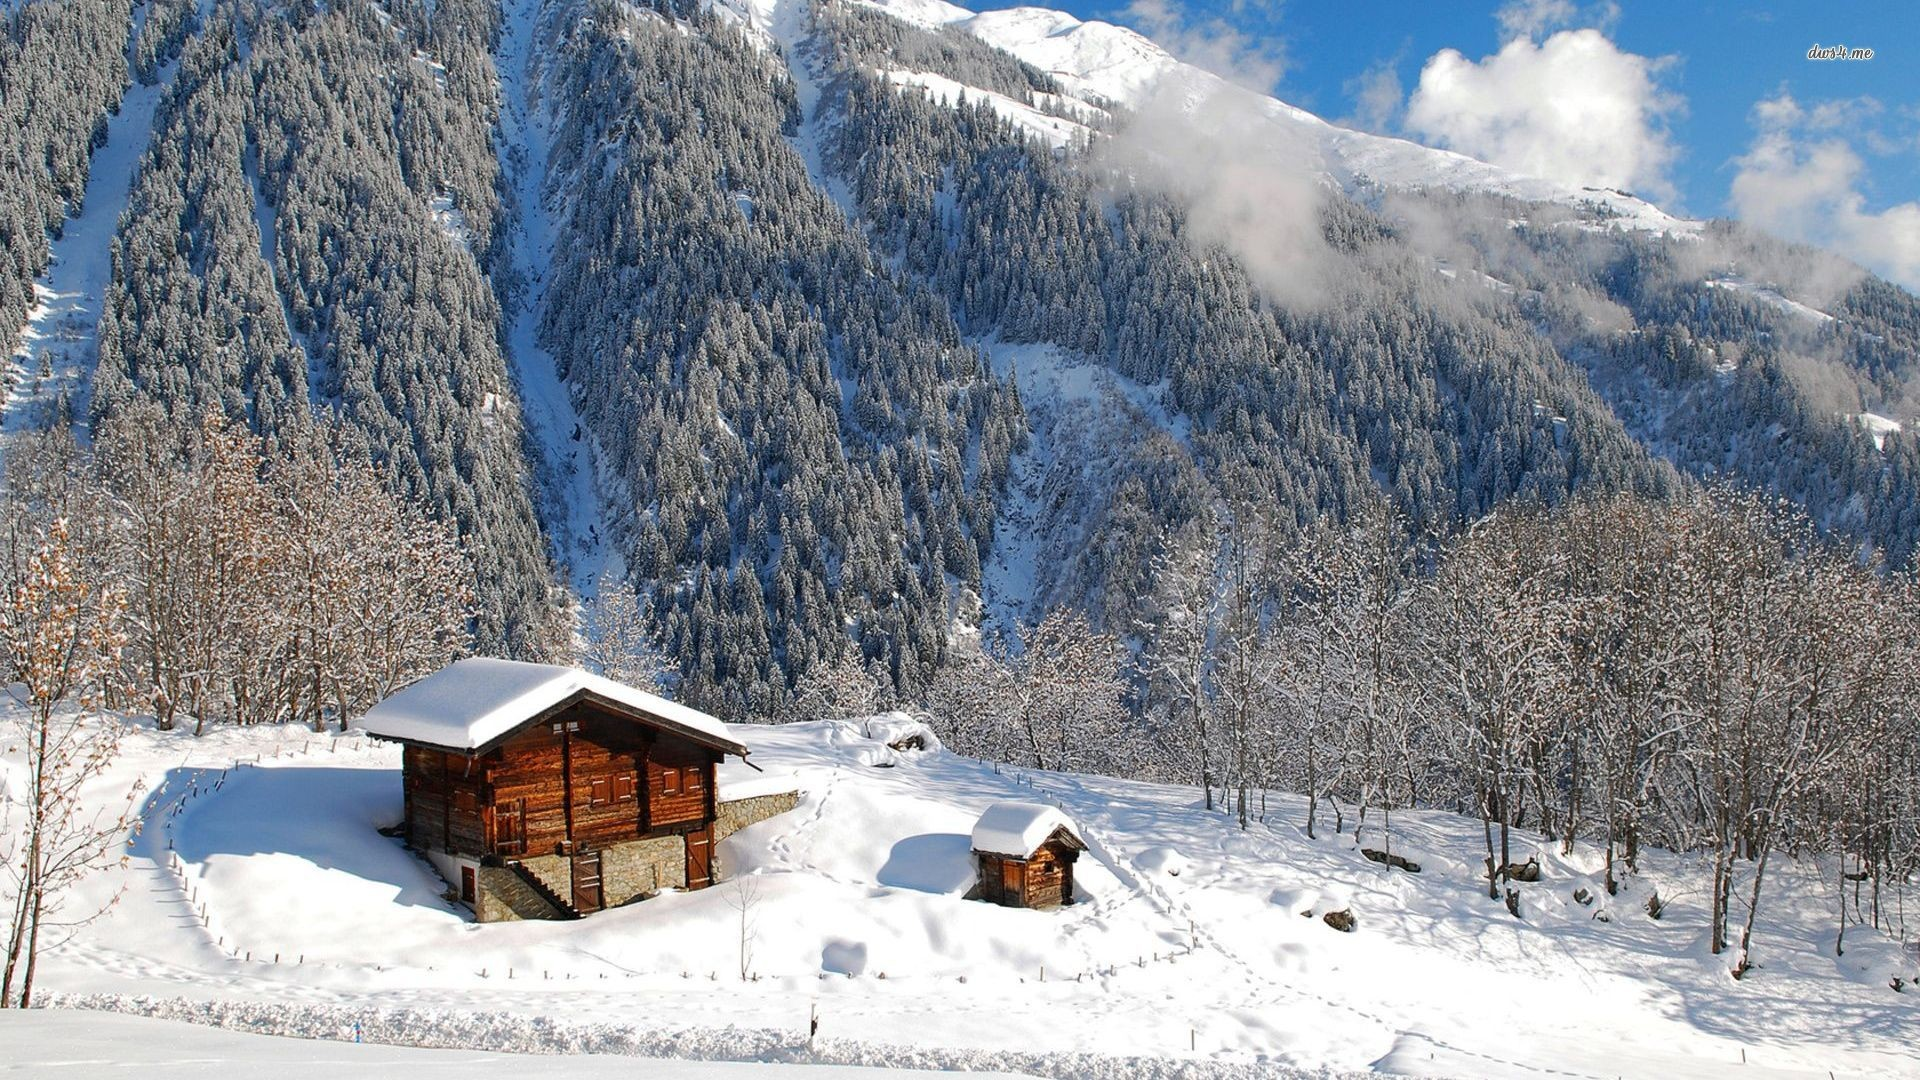 snowy mountains wallpaper Wooden cabins in the snowy mountains wallpaper –  World wallpapers – #